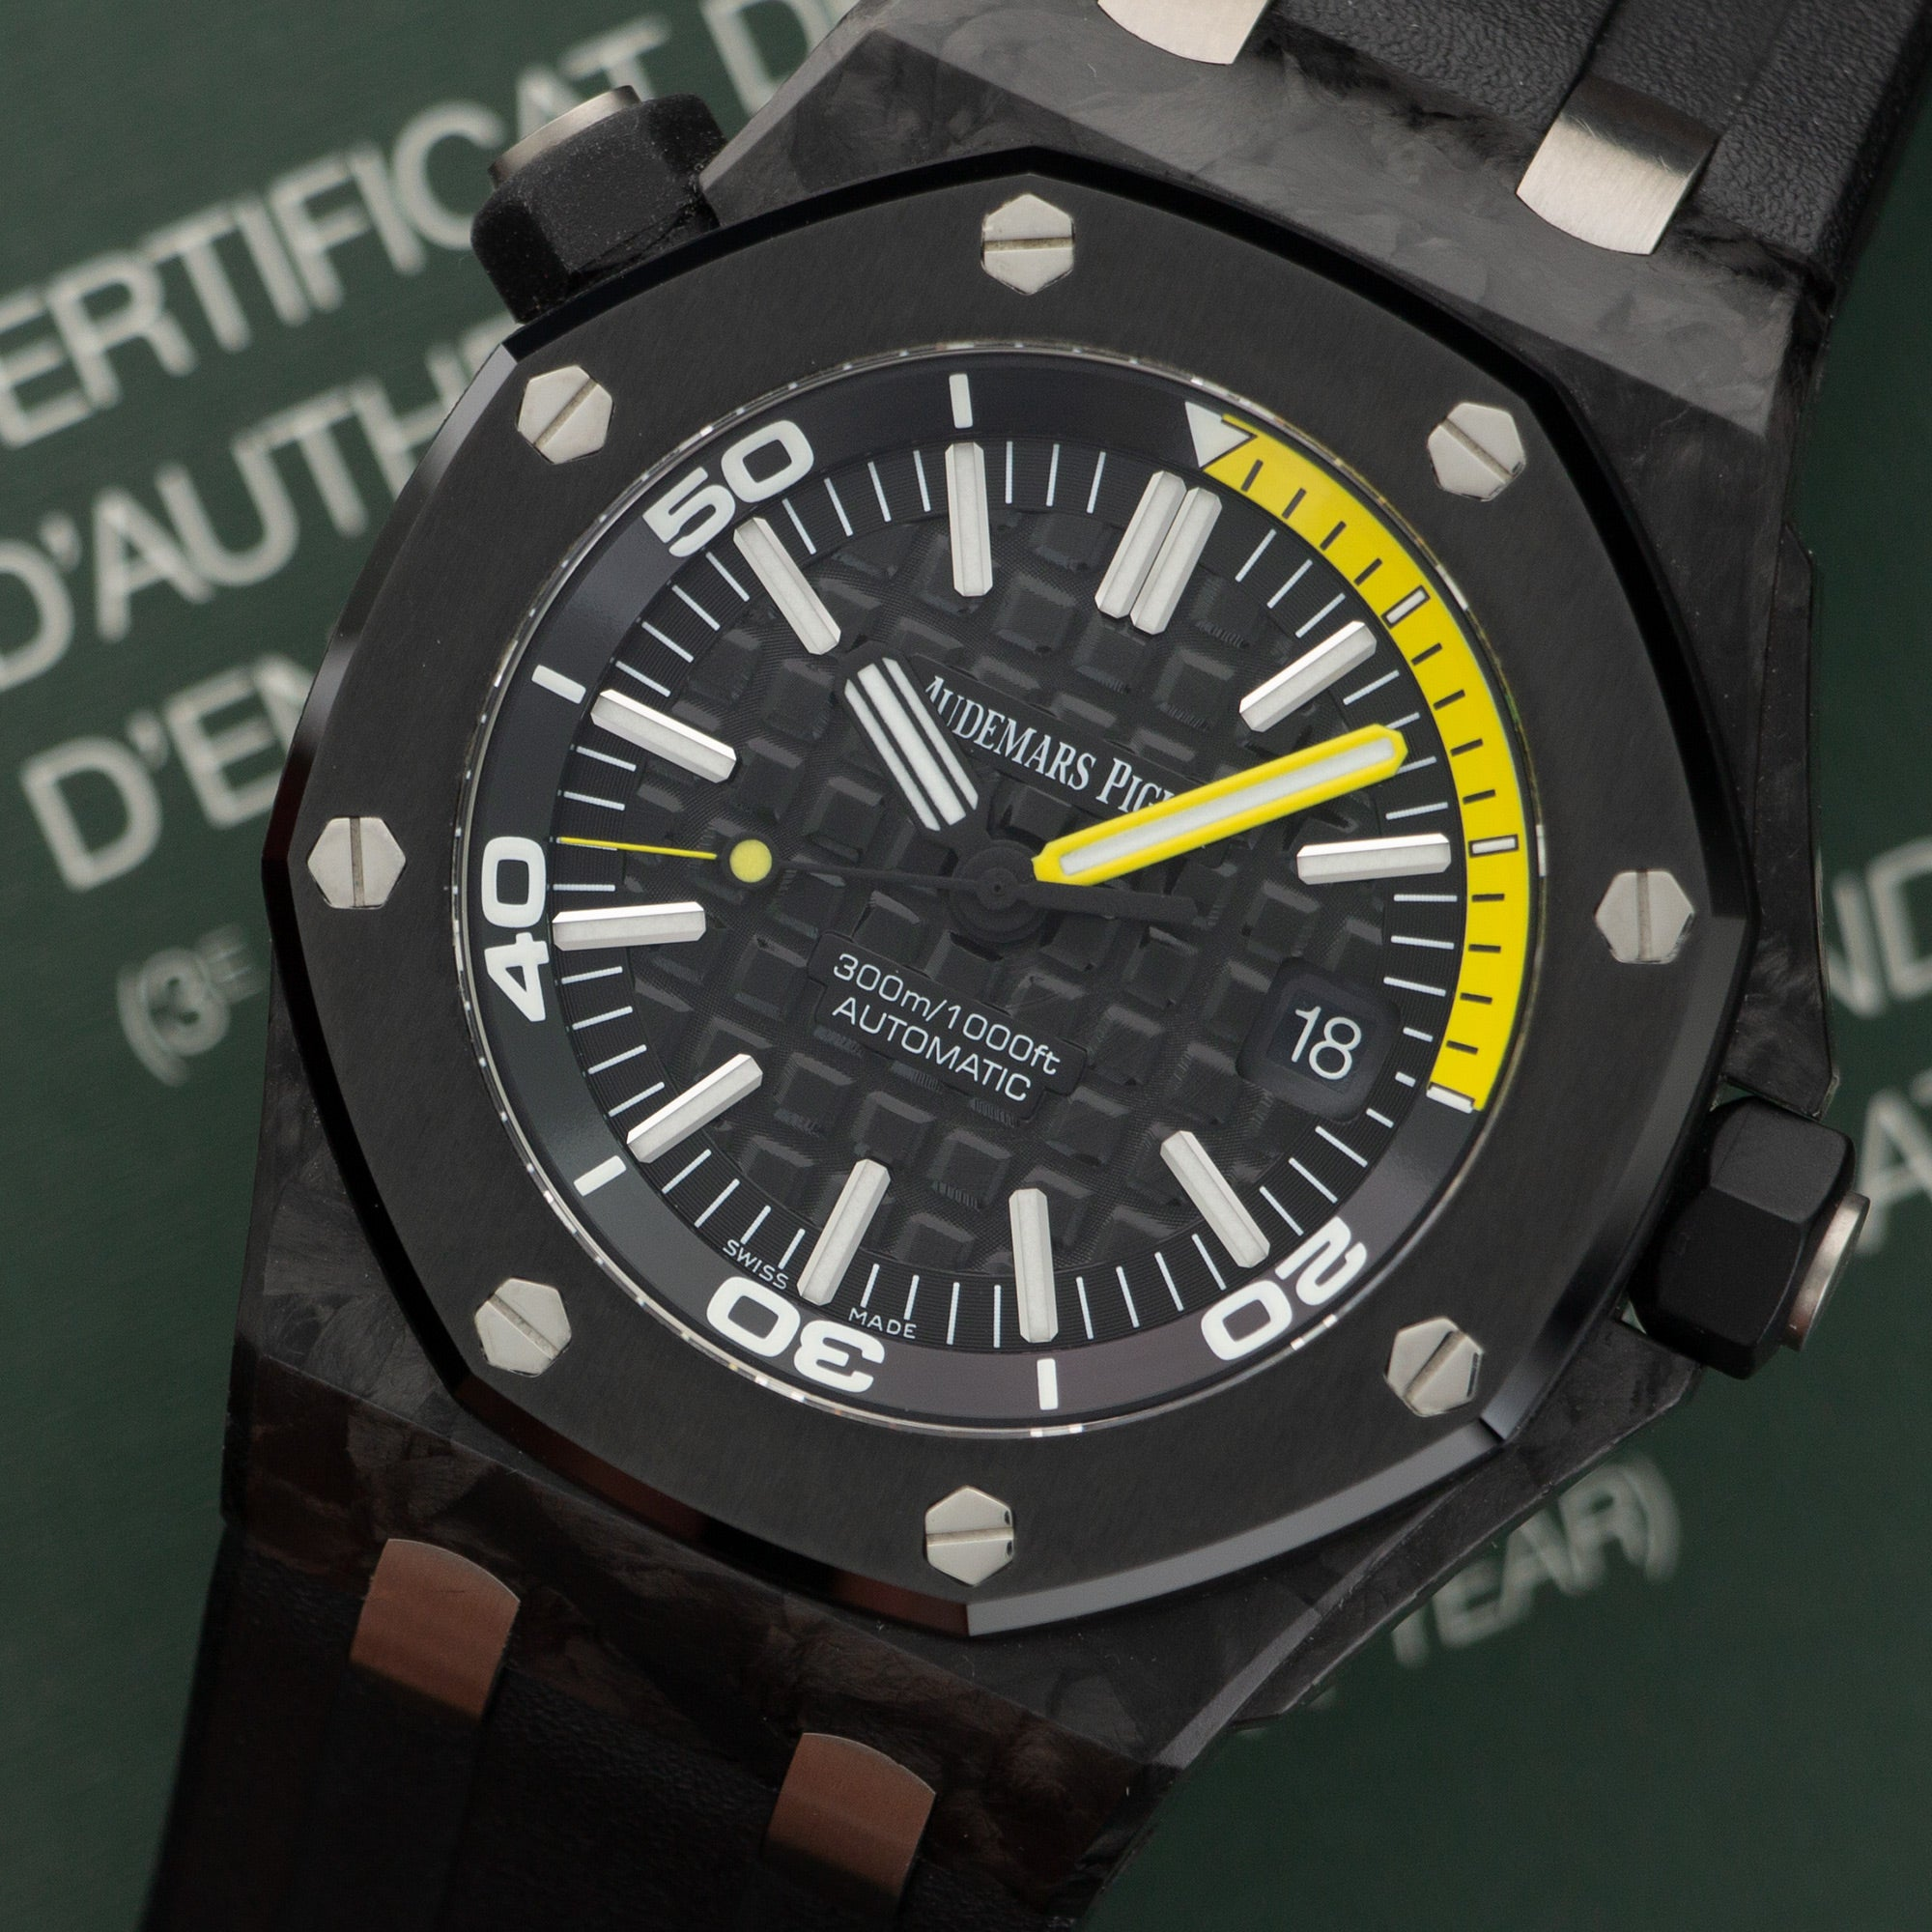 Audemars Piguet Royal Oak Offshore 15706AU.00.A002CA.01 Carbon Fiber  Like New, Worn a Few Times Gents Carbon Fiber Black Waffle Dial with Yellow Accents 42mm Automatic 2014 Black Rubber Box, Manuals, Warranty Card